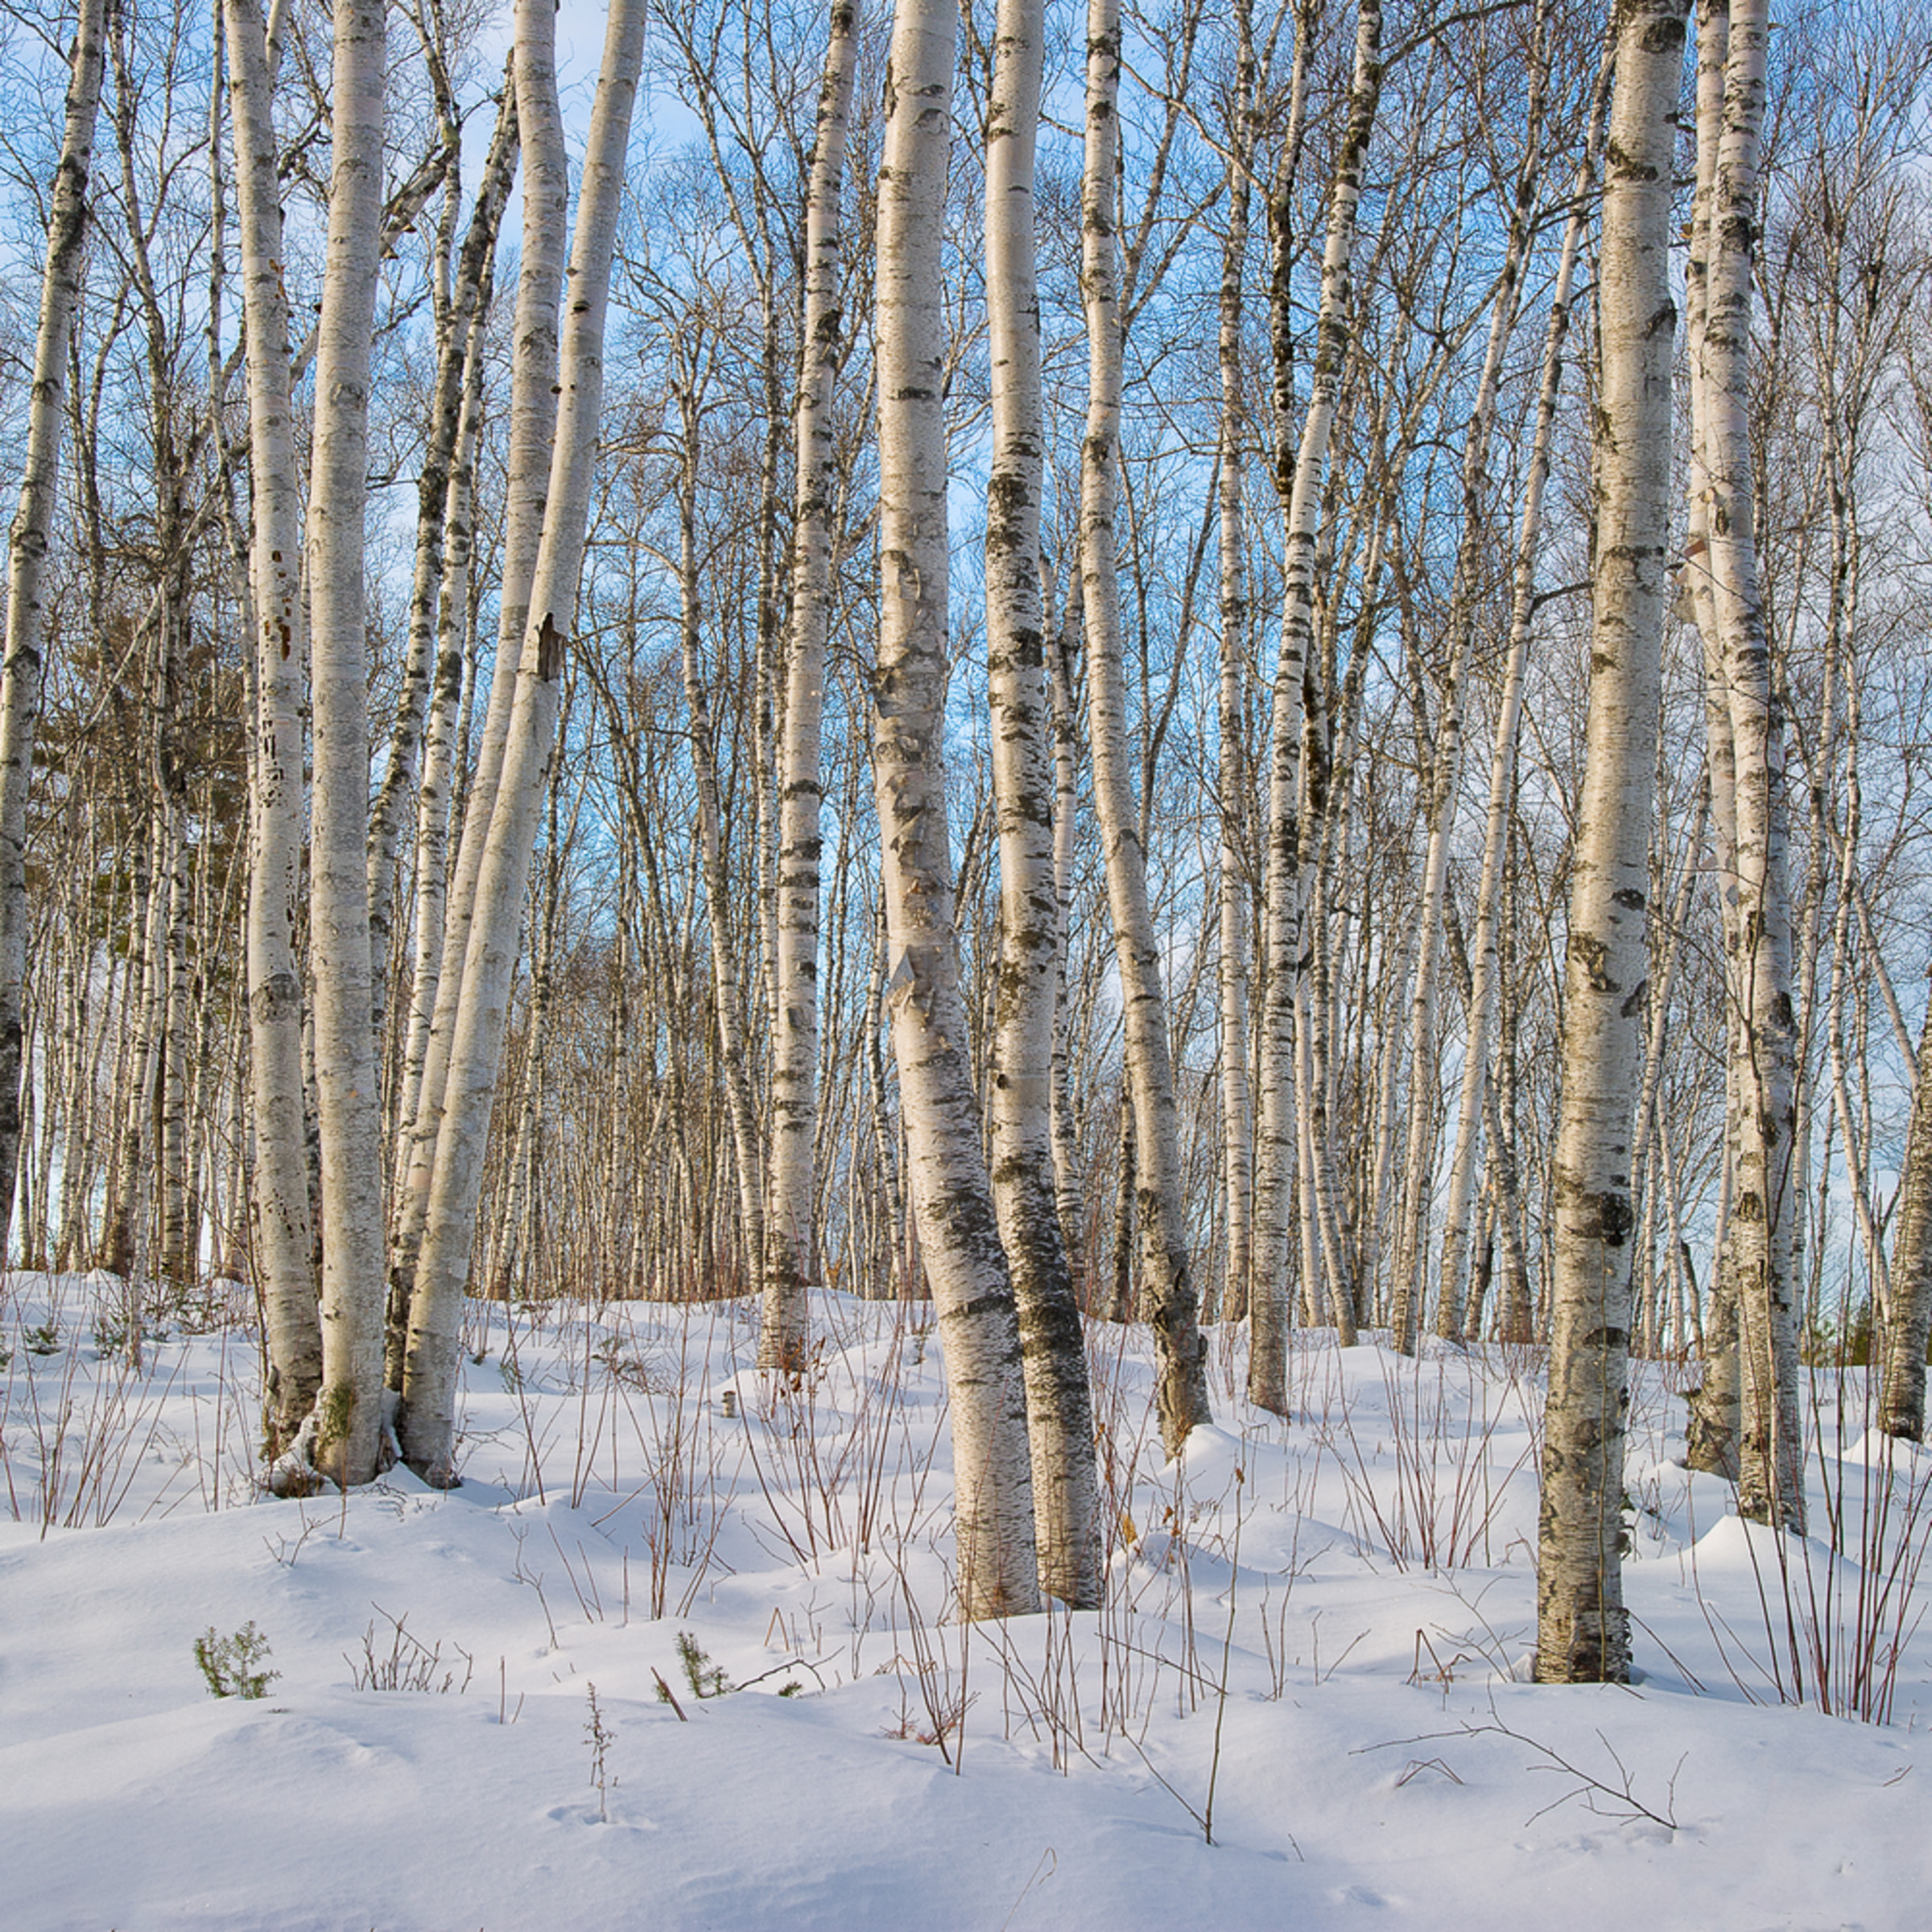 Birches in winter yadp3f